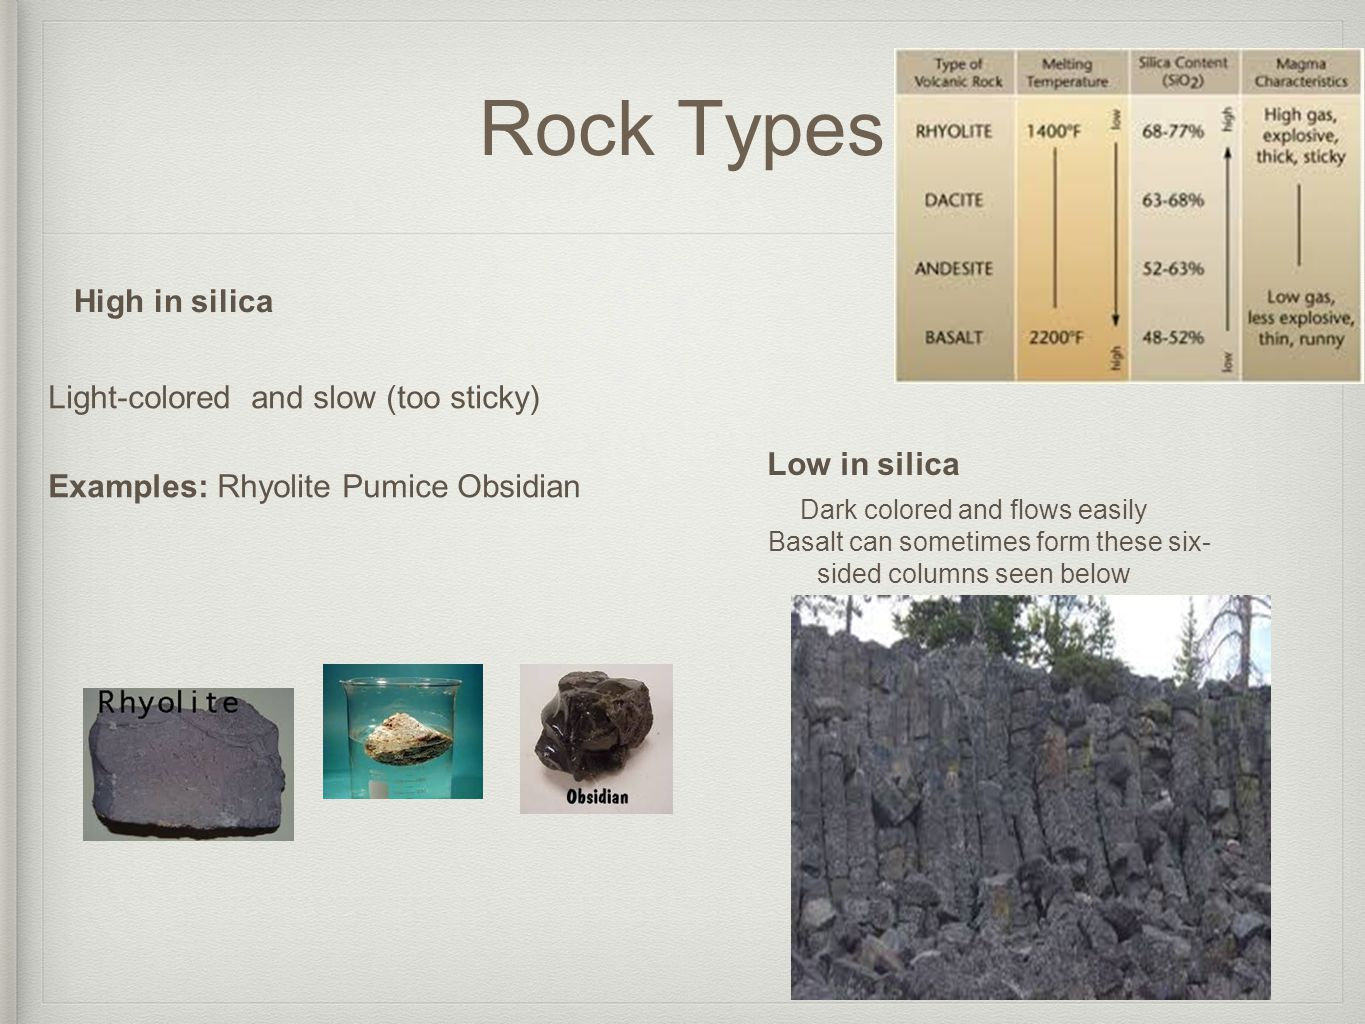 Rock Types High in silica Light-colored and slow (too sticky) Examples: Rhyolite Pumice Obsidian Low in silica Dark colored and flows easily Basalt can sometimes form these six- sided columns seen below